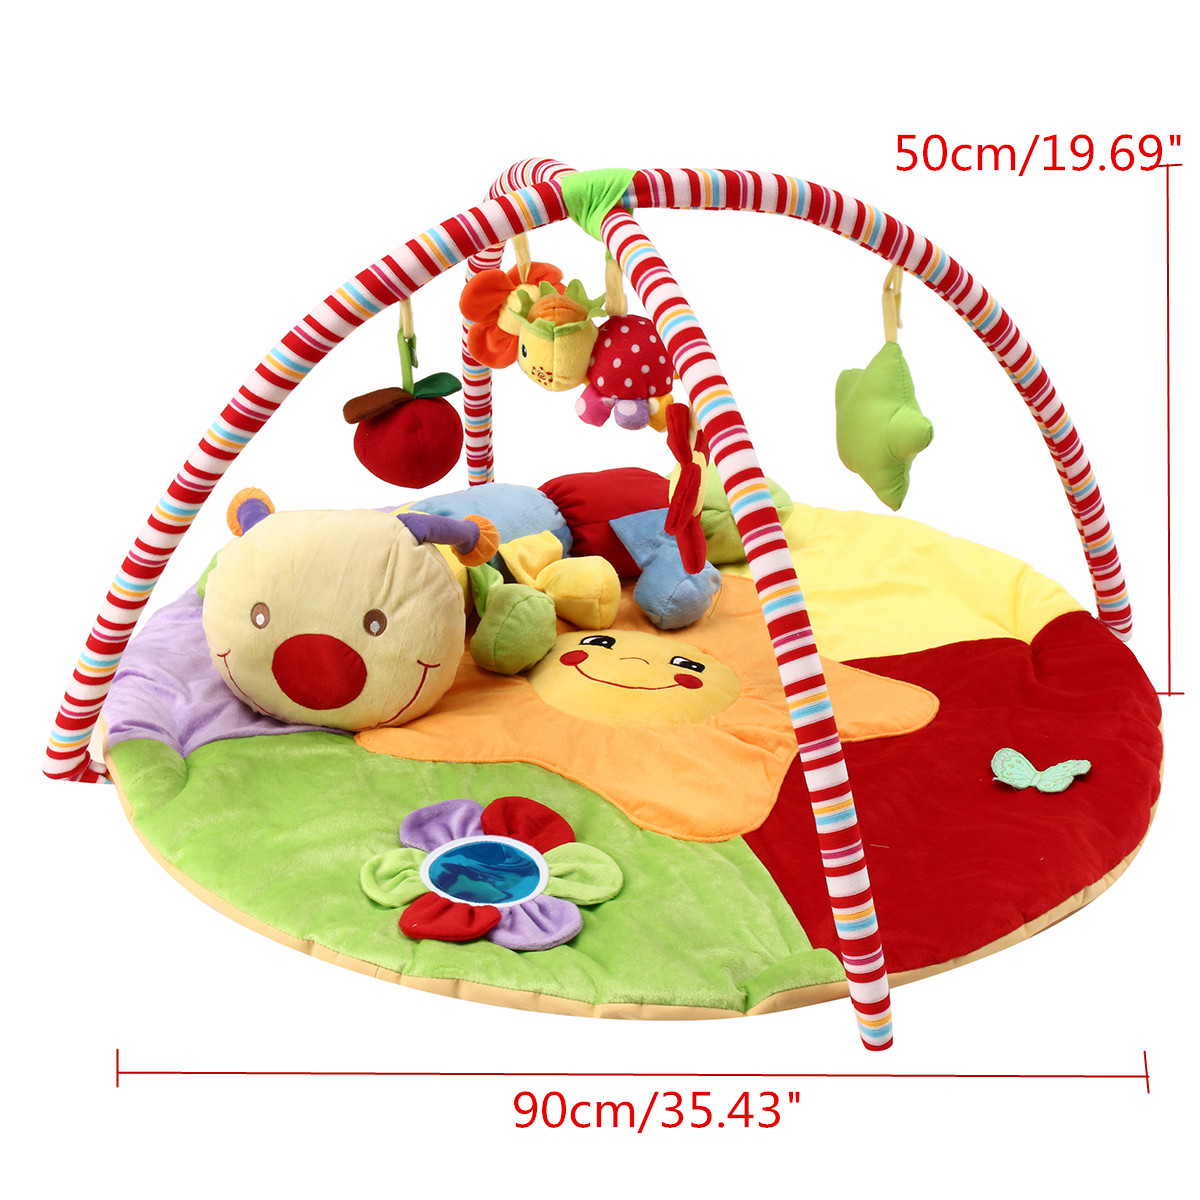 Baby Musical Play Mat Gratis Tummy Time Caterpillar Soft Toy Premium Baby Play Mat